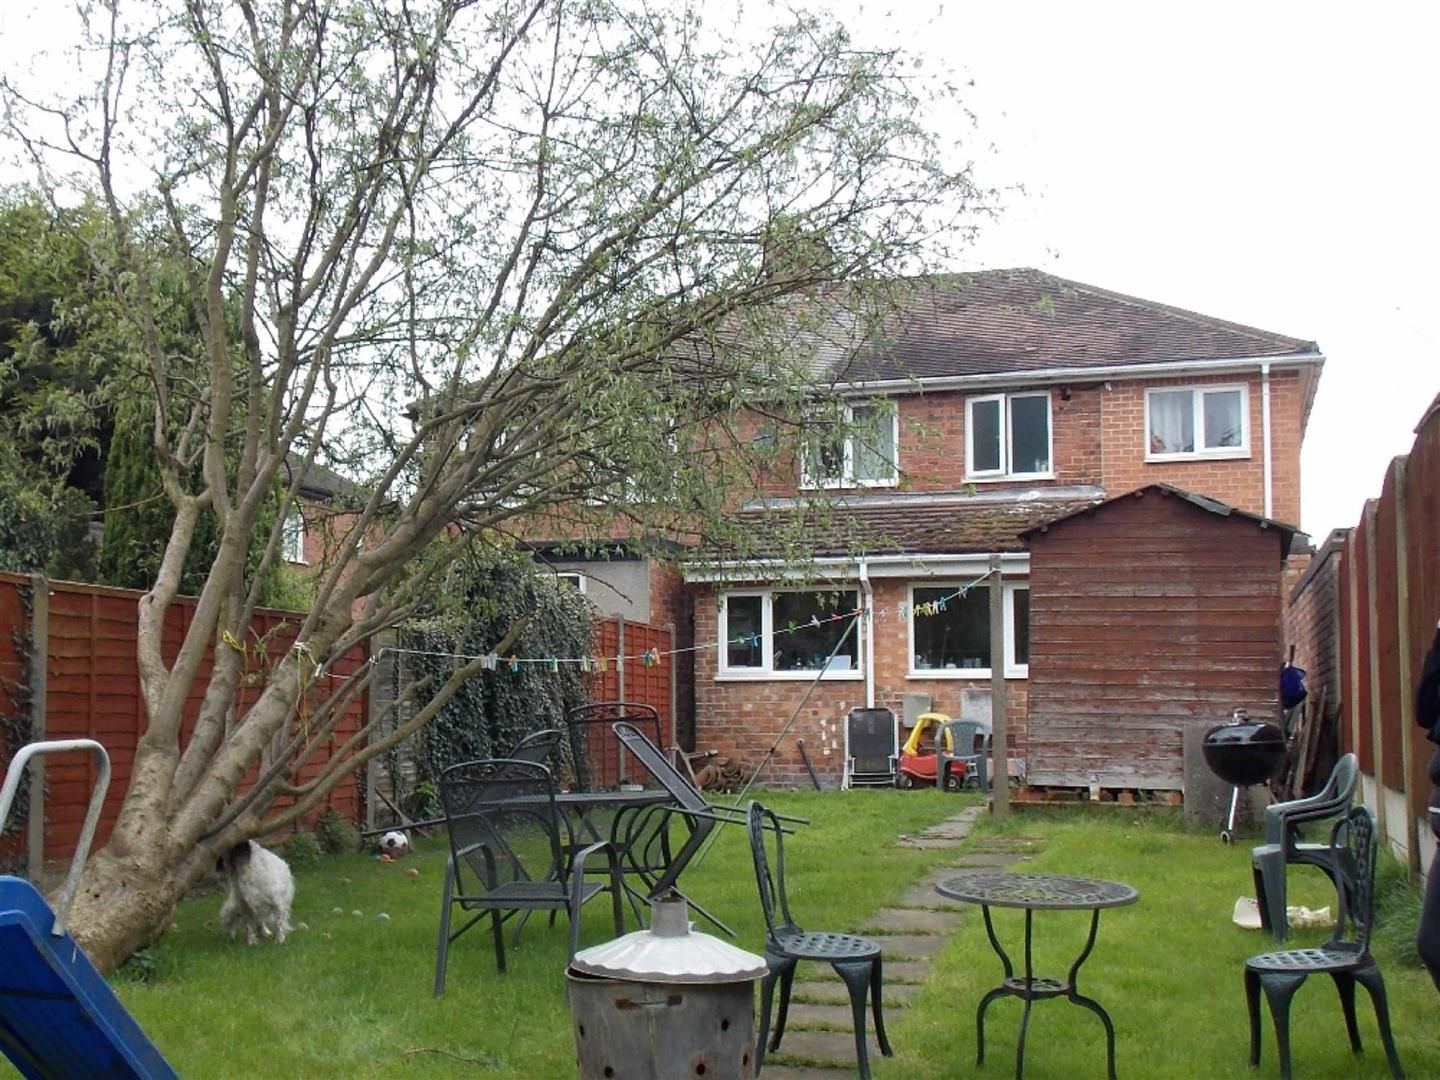 4 bed  for sale  - Property Image 15